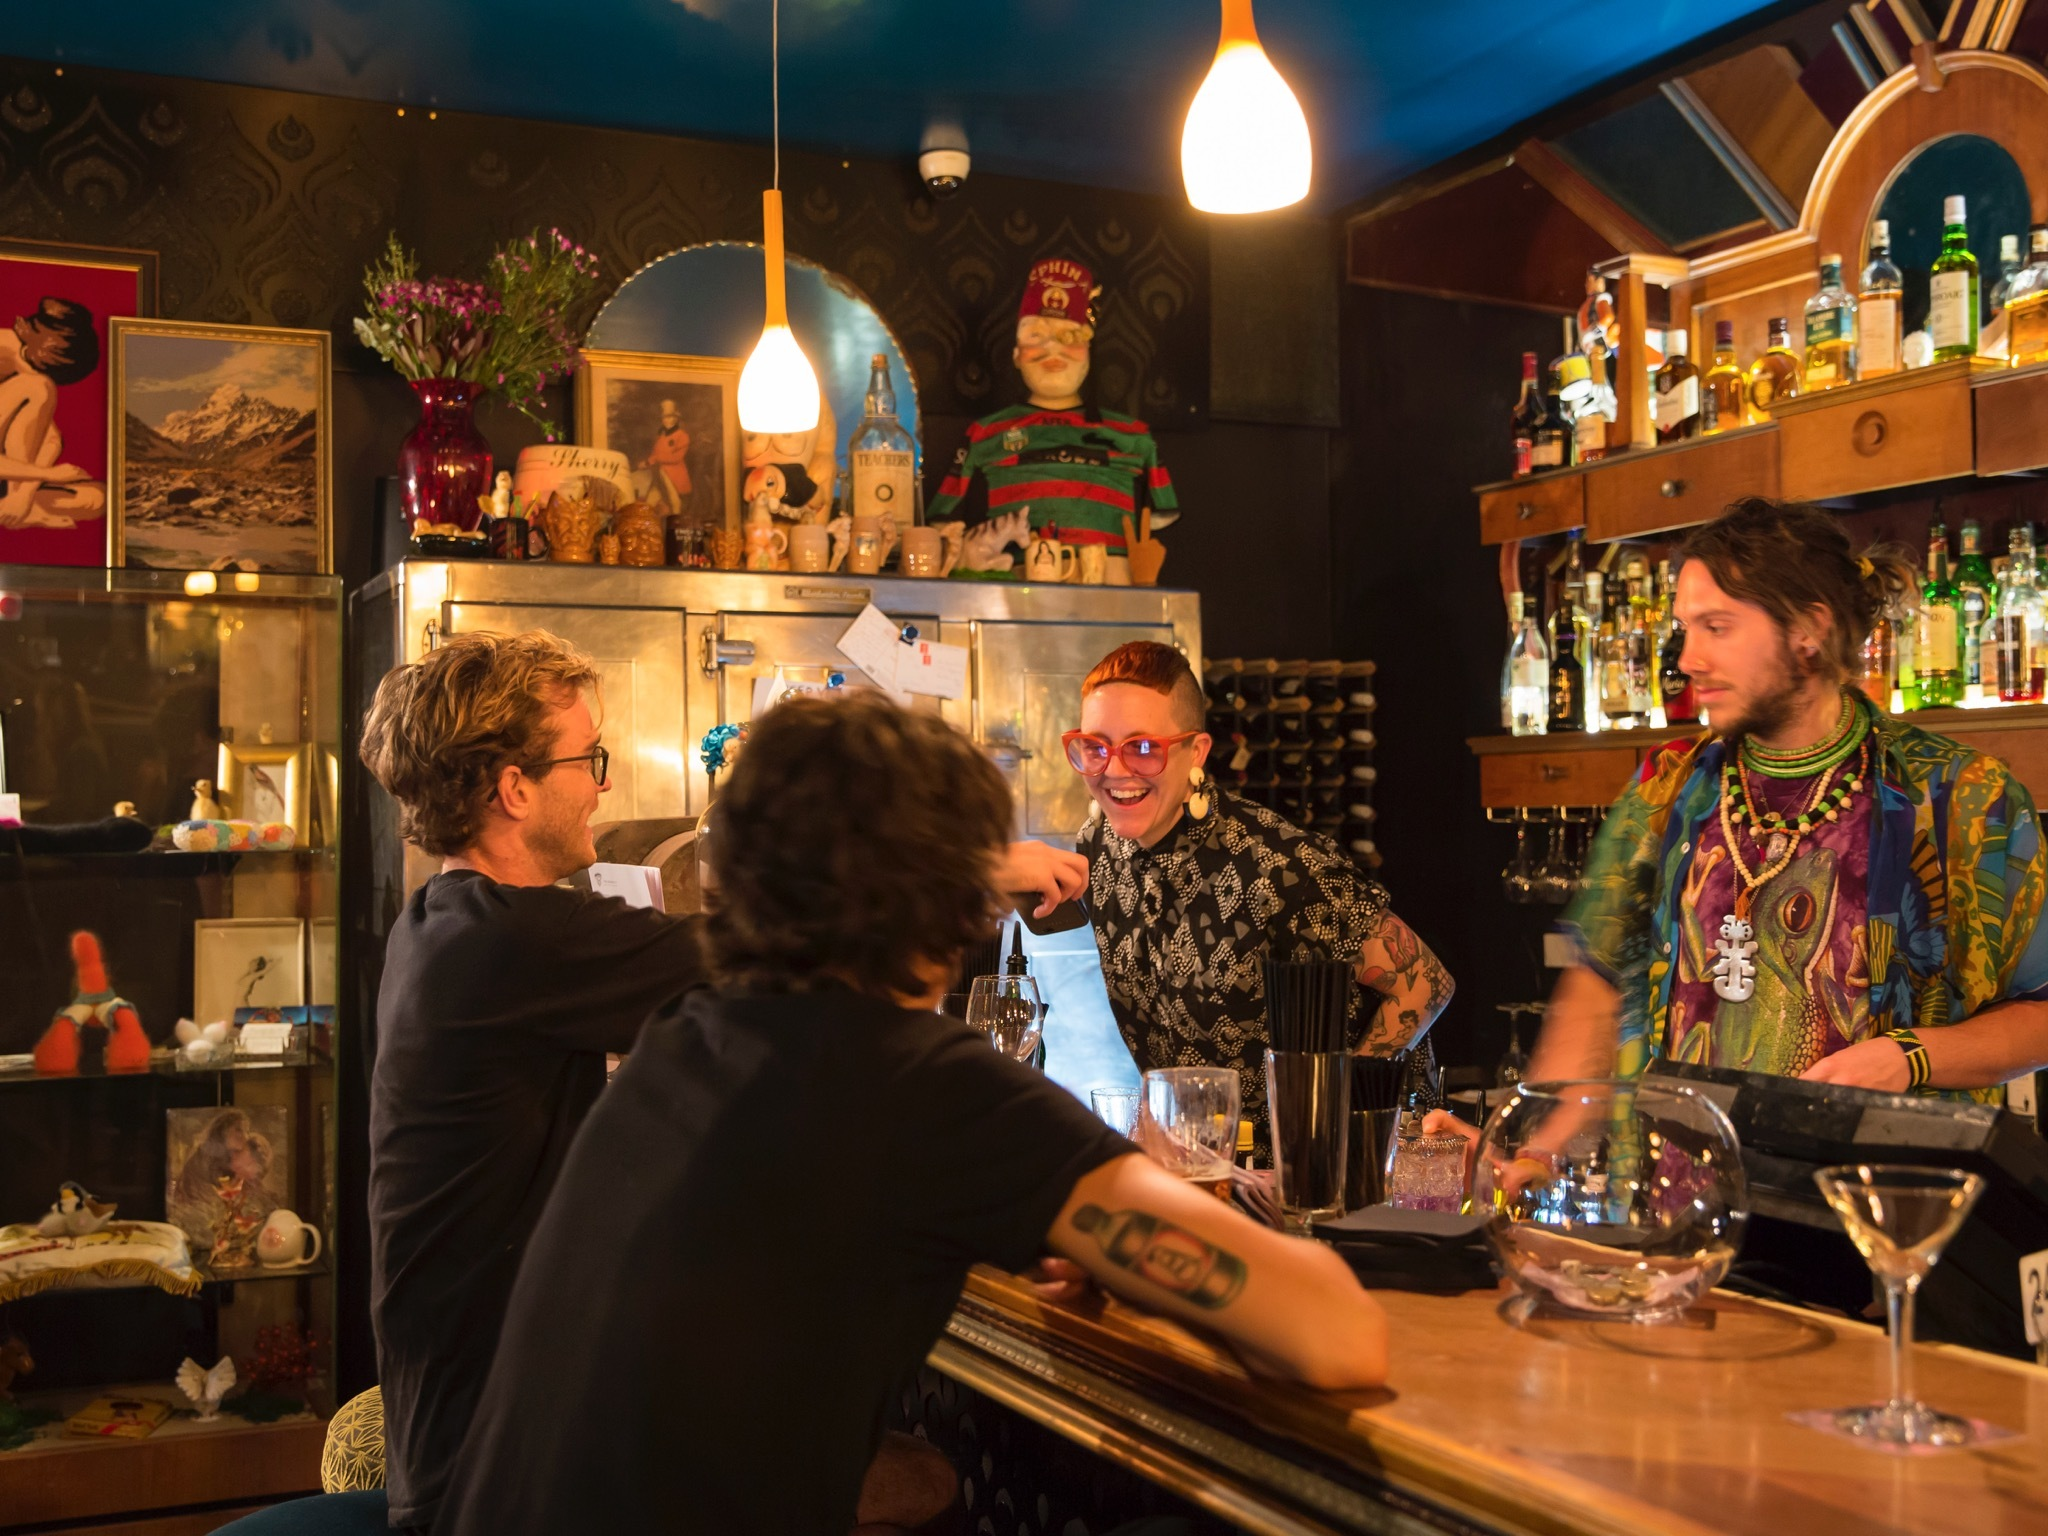 A shot of two bartenders behind the bar at The Bearded Tit